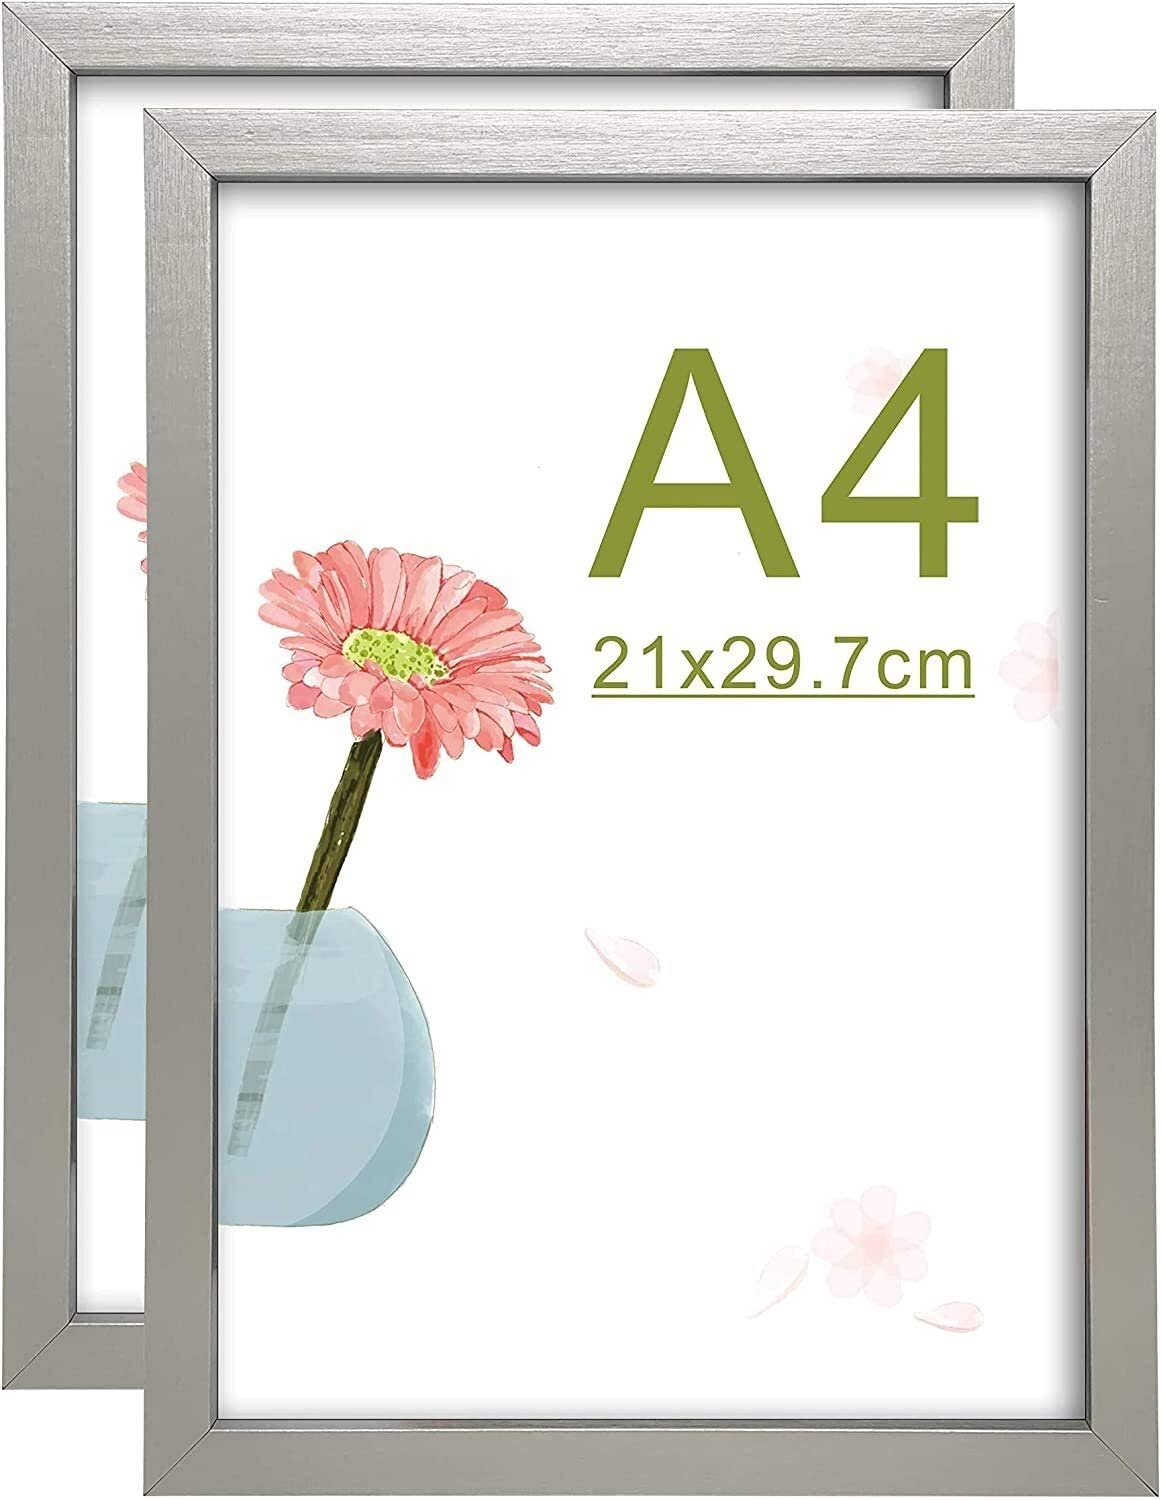 RENFEIYUAN 6x4'' 10x15cm Wood Photo Frames of Max 86% OFF Vintage Set W 4 Quality inspection